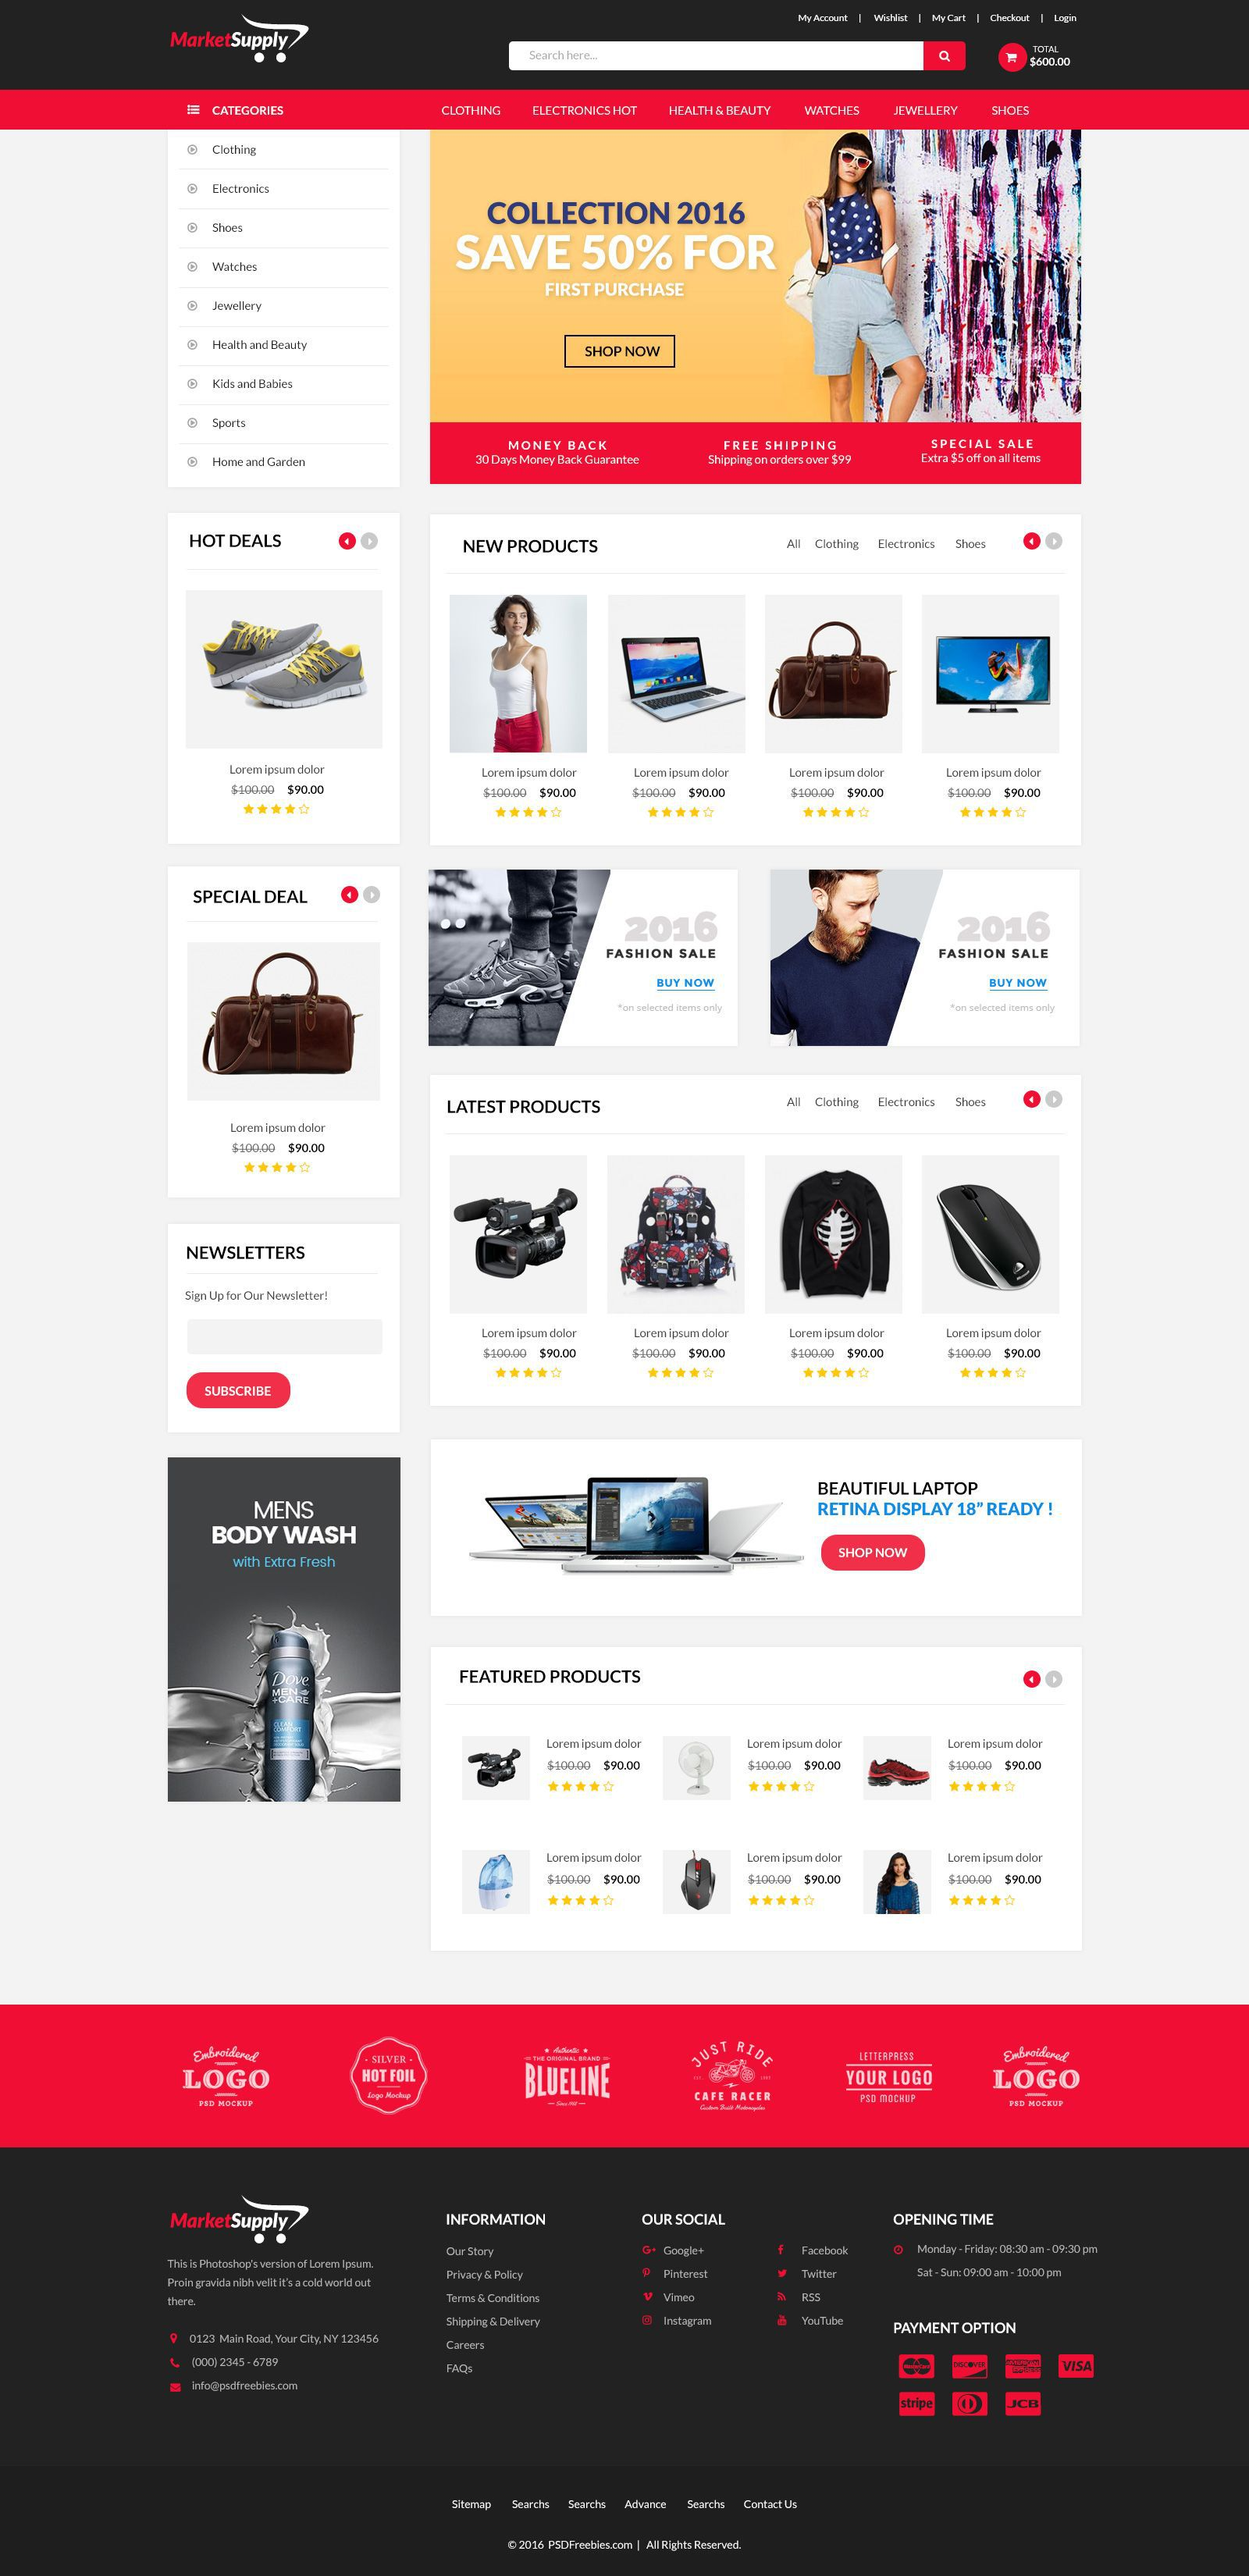 000 Shocking Free Php Website Template Idea  Download And Cs Full ThemeFull